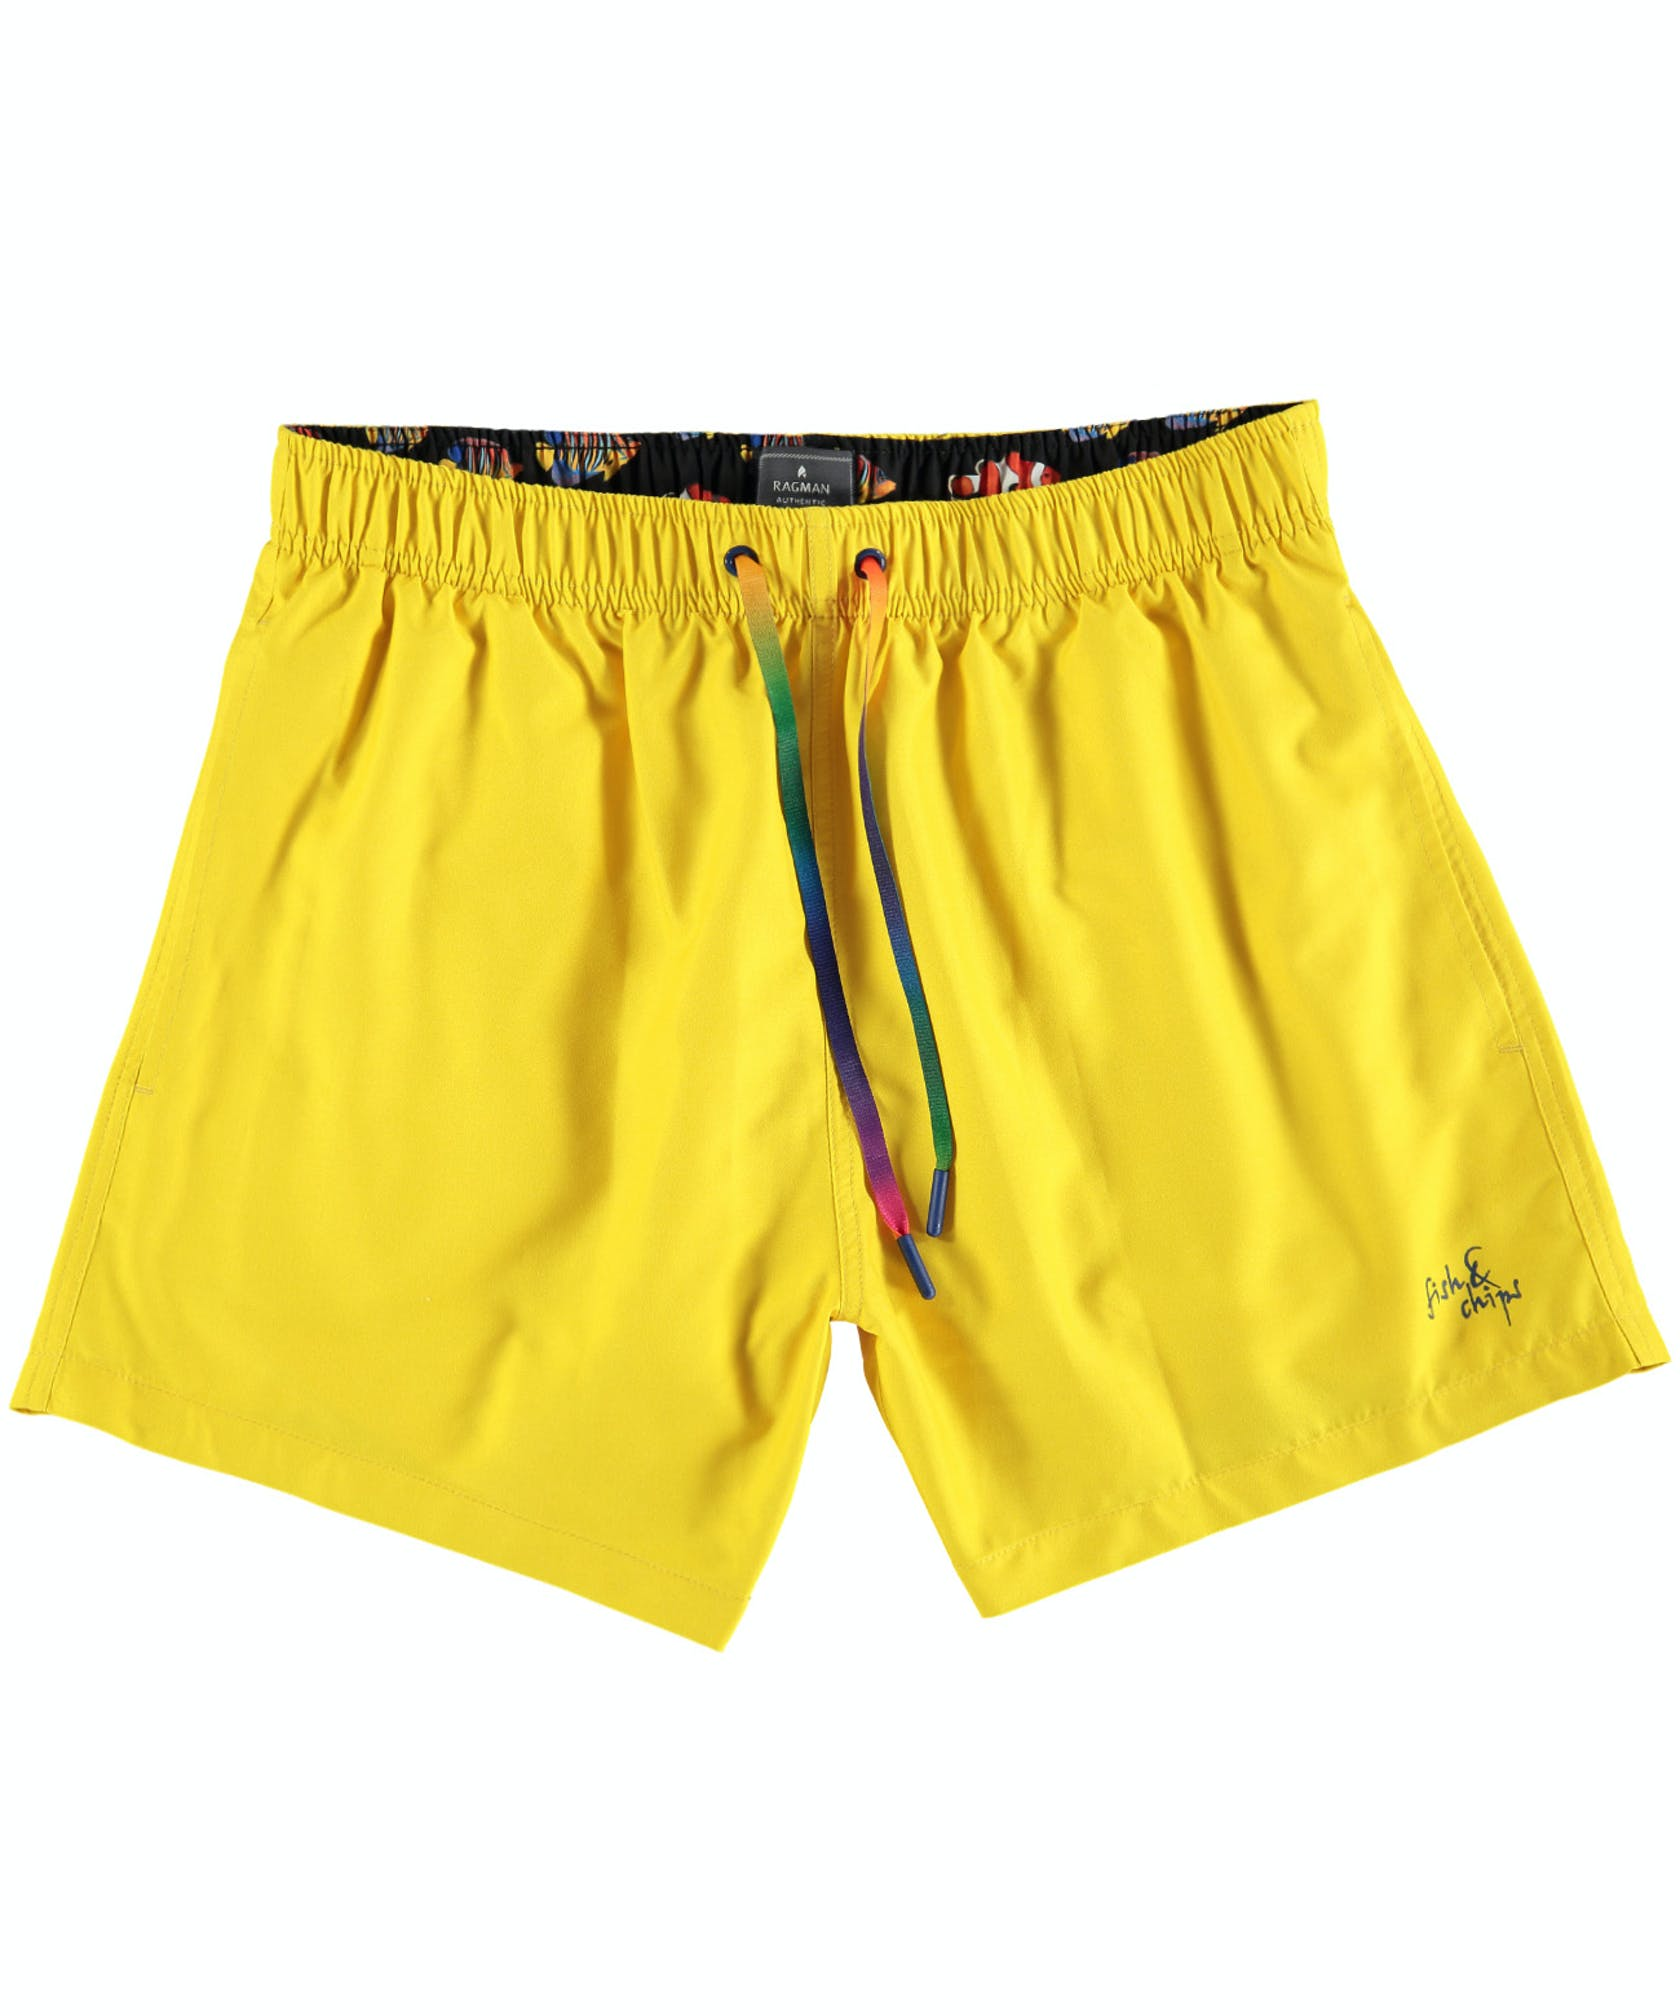 RAGMAN Bade-Shorts uni